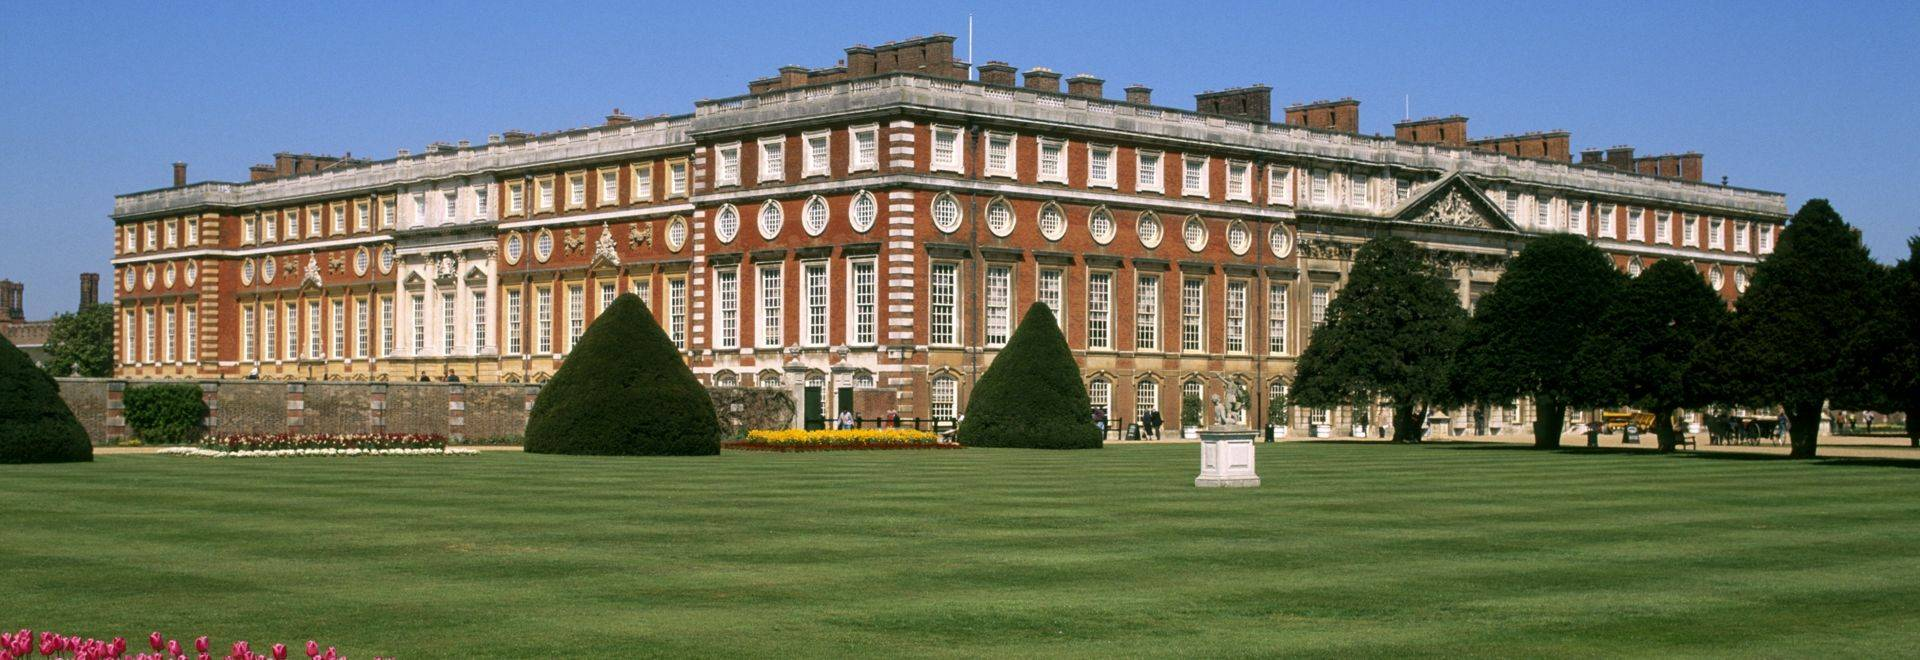 England, Richmond-Upon-Thames, Hampton Court Palace and grounds